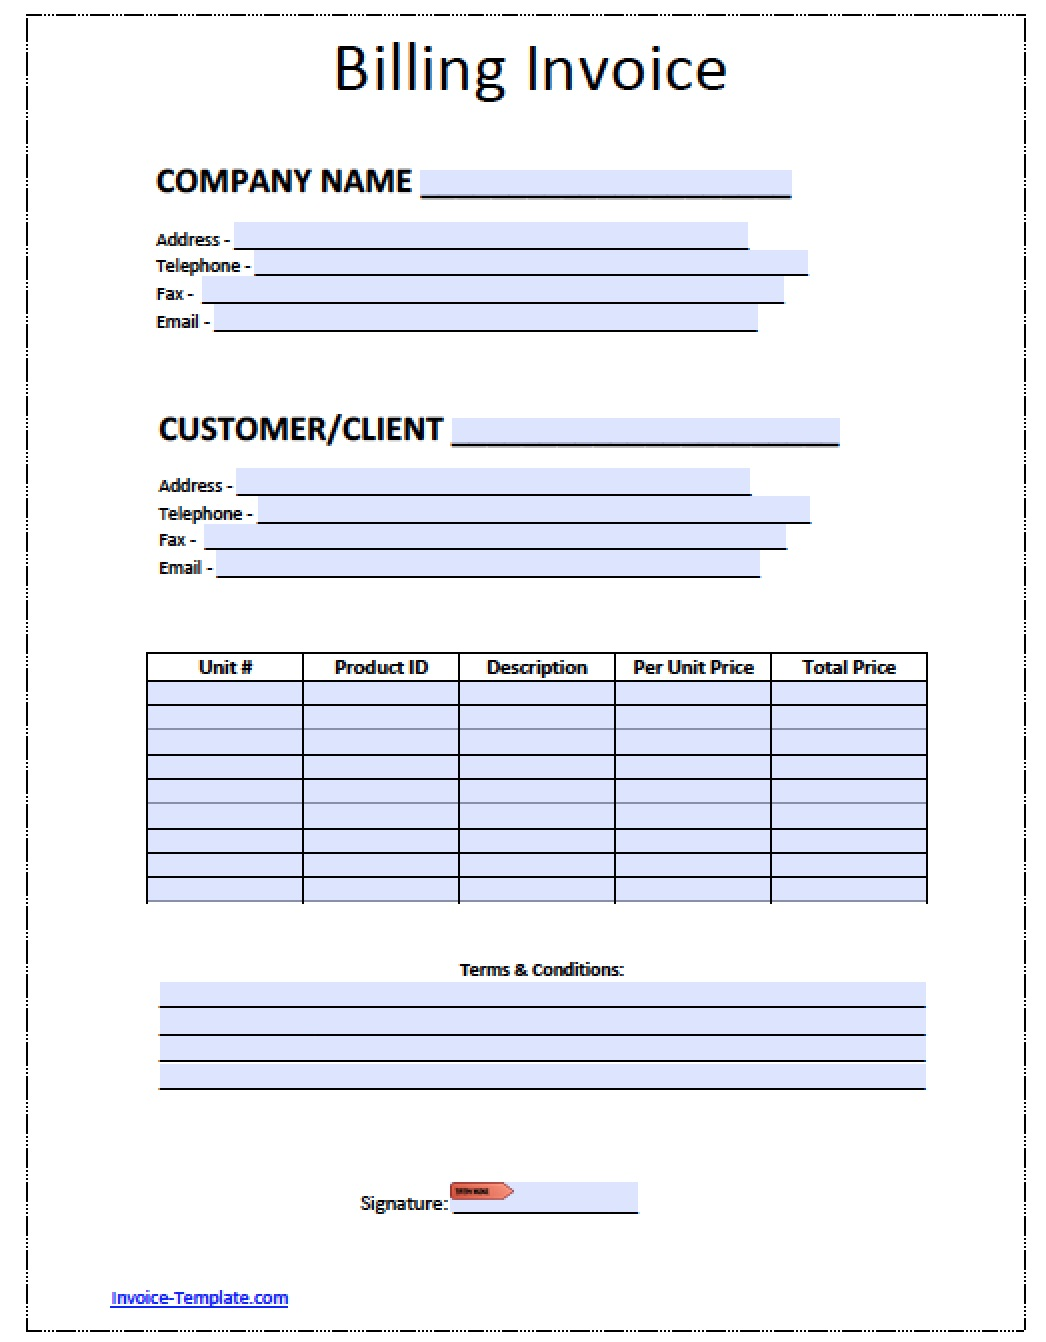 Patriotexpressus  Ravishing Billing Invoice Invoices Faq U Cloudflare Support Billing  With Interesting Free Billing Invoice Template  Excel  Pdf  Word Doc  Billing With Delectable Sample Letter Of Acknowledgement Receipt Also Pay Receipt Template In Addition Receipt Of Lic Premium Paid And Hand Delivery Receipt Template As Well As Cash Receipt Book Sample Additionally Receipt Template For Excel From Happytomco With Patriotexpressus  Interesting Billing Invoice Invoices Faq U Cloudflare Support Billing  With Delectable Free Billing Invoice Template  Excel  Pdf  Word Doc  Billing And Ravishing Sample Letter Of Acknowledgement Receipt Also Pay Receipt Template In Addition Receipt Of Lic Premium Paid From Happytomco